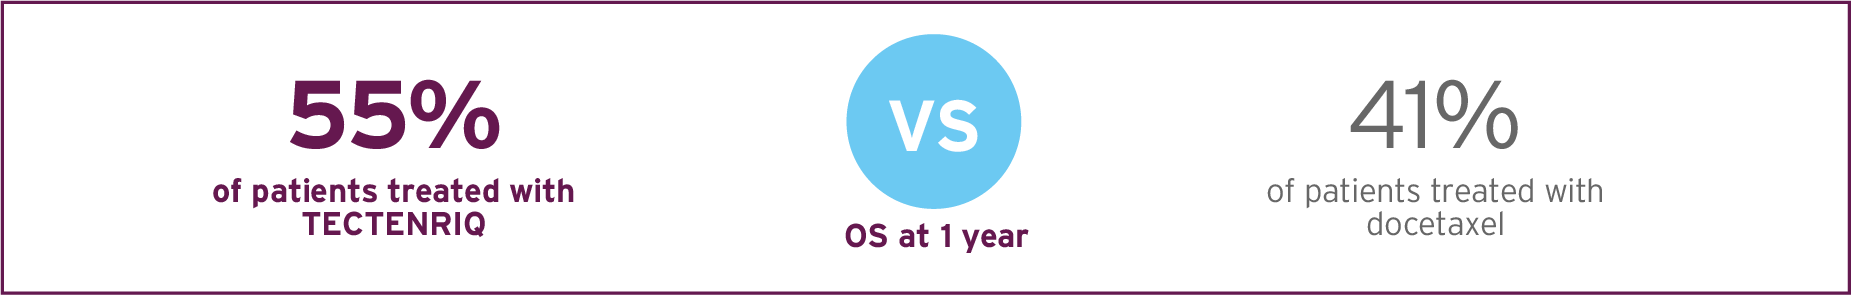 Infographic to present 1 year OS data from the OAK trial.